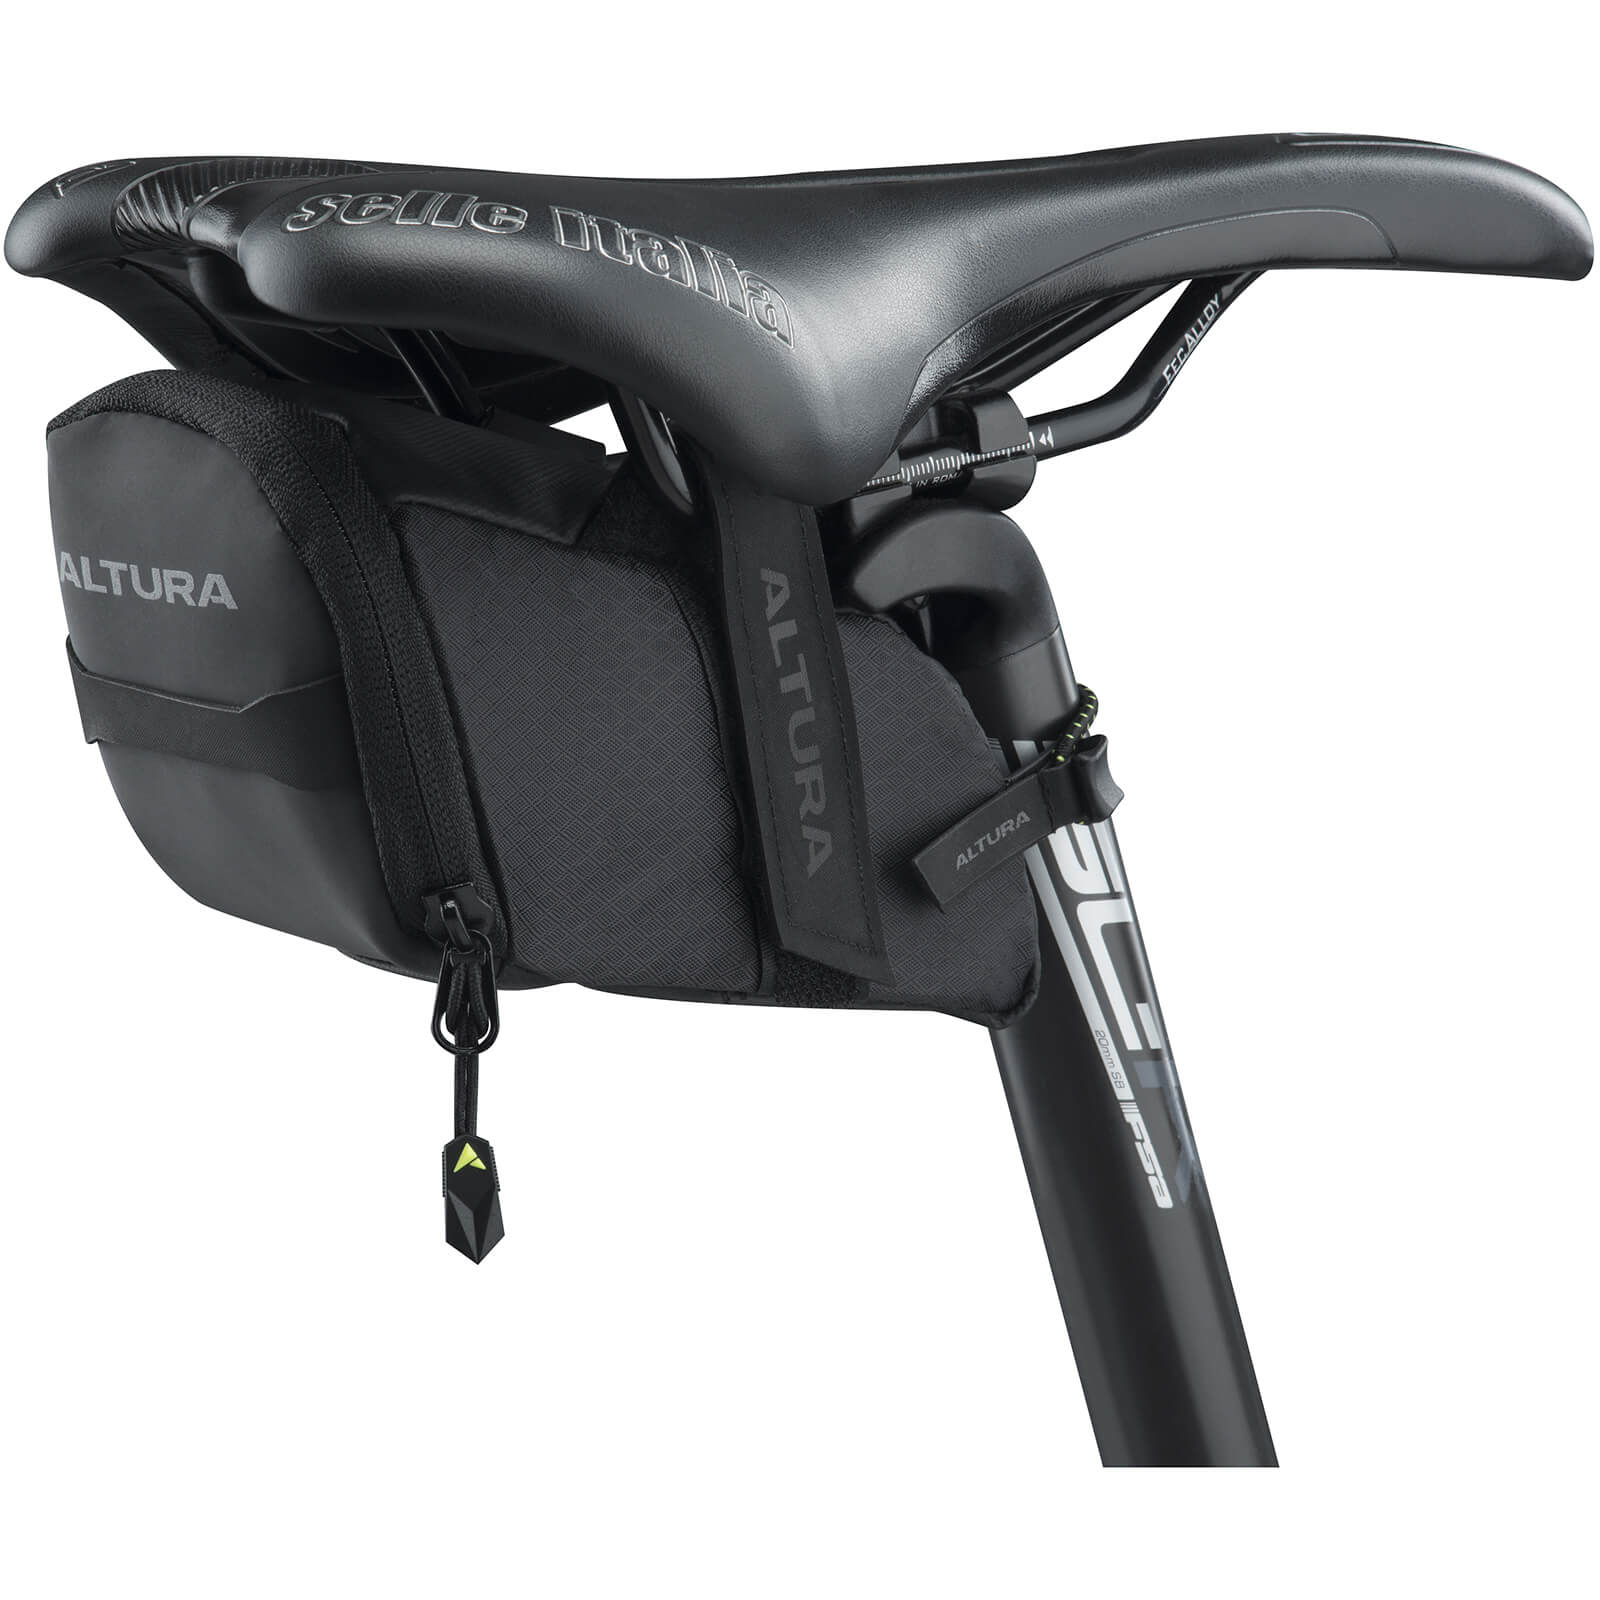 Altura NV Road Saddle Bag - Black - Medium